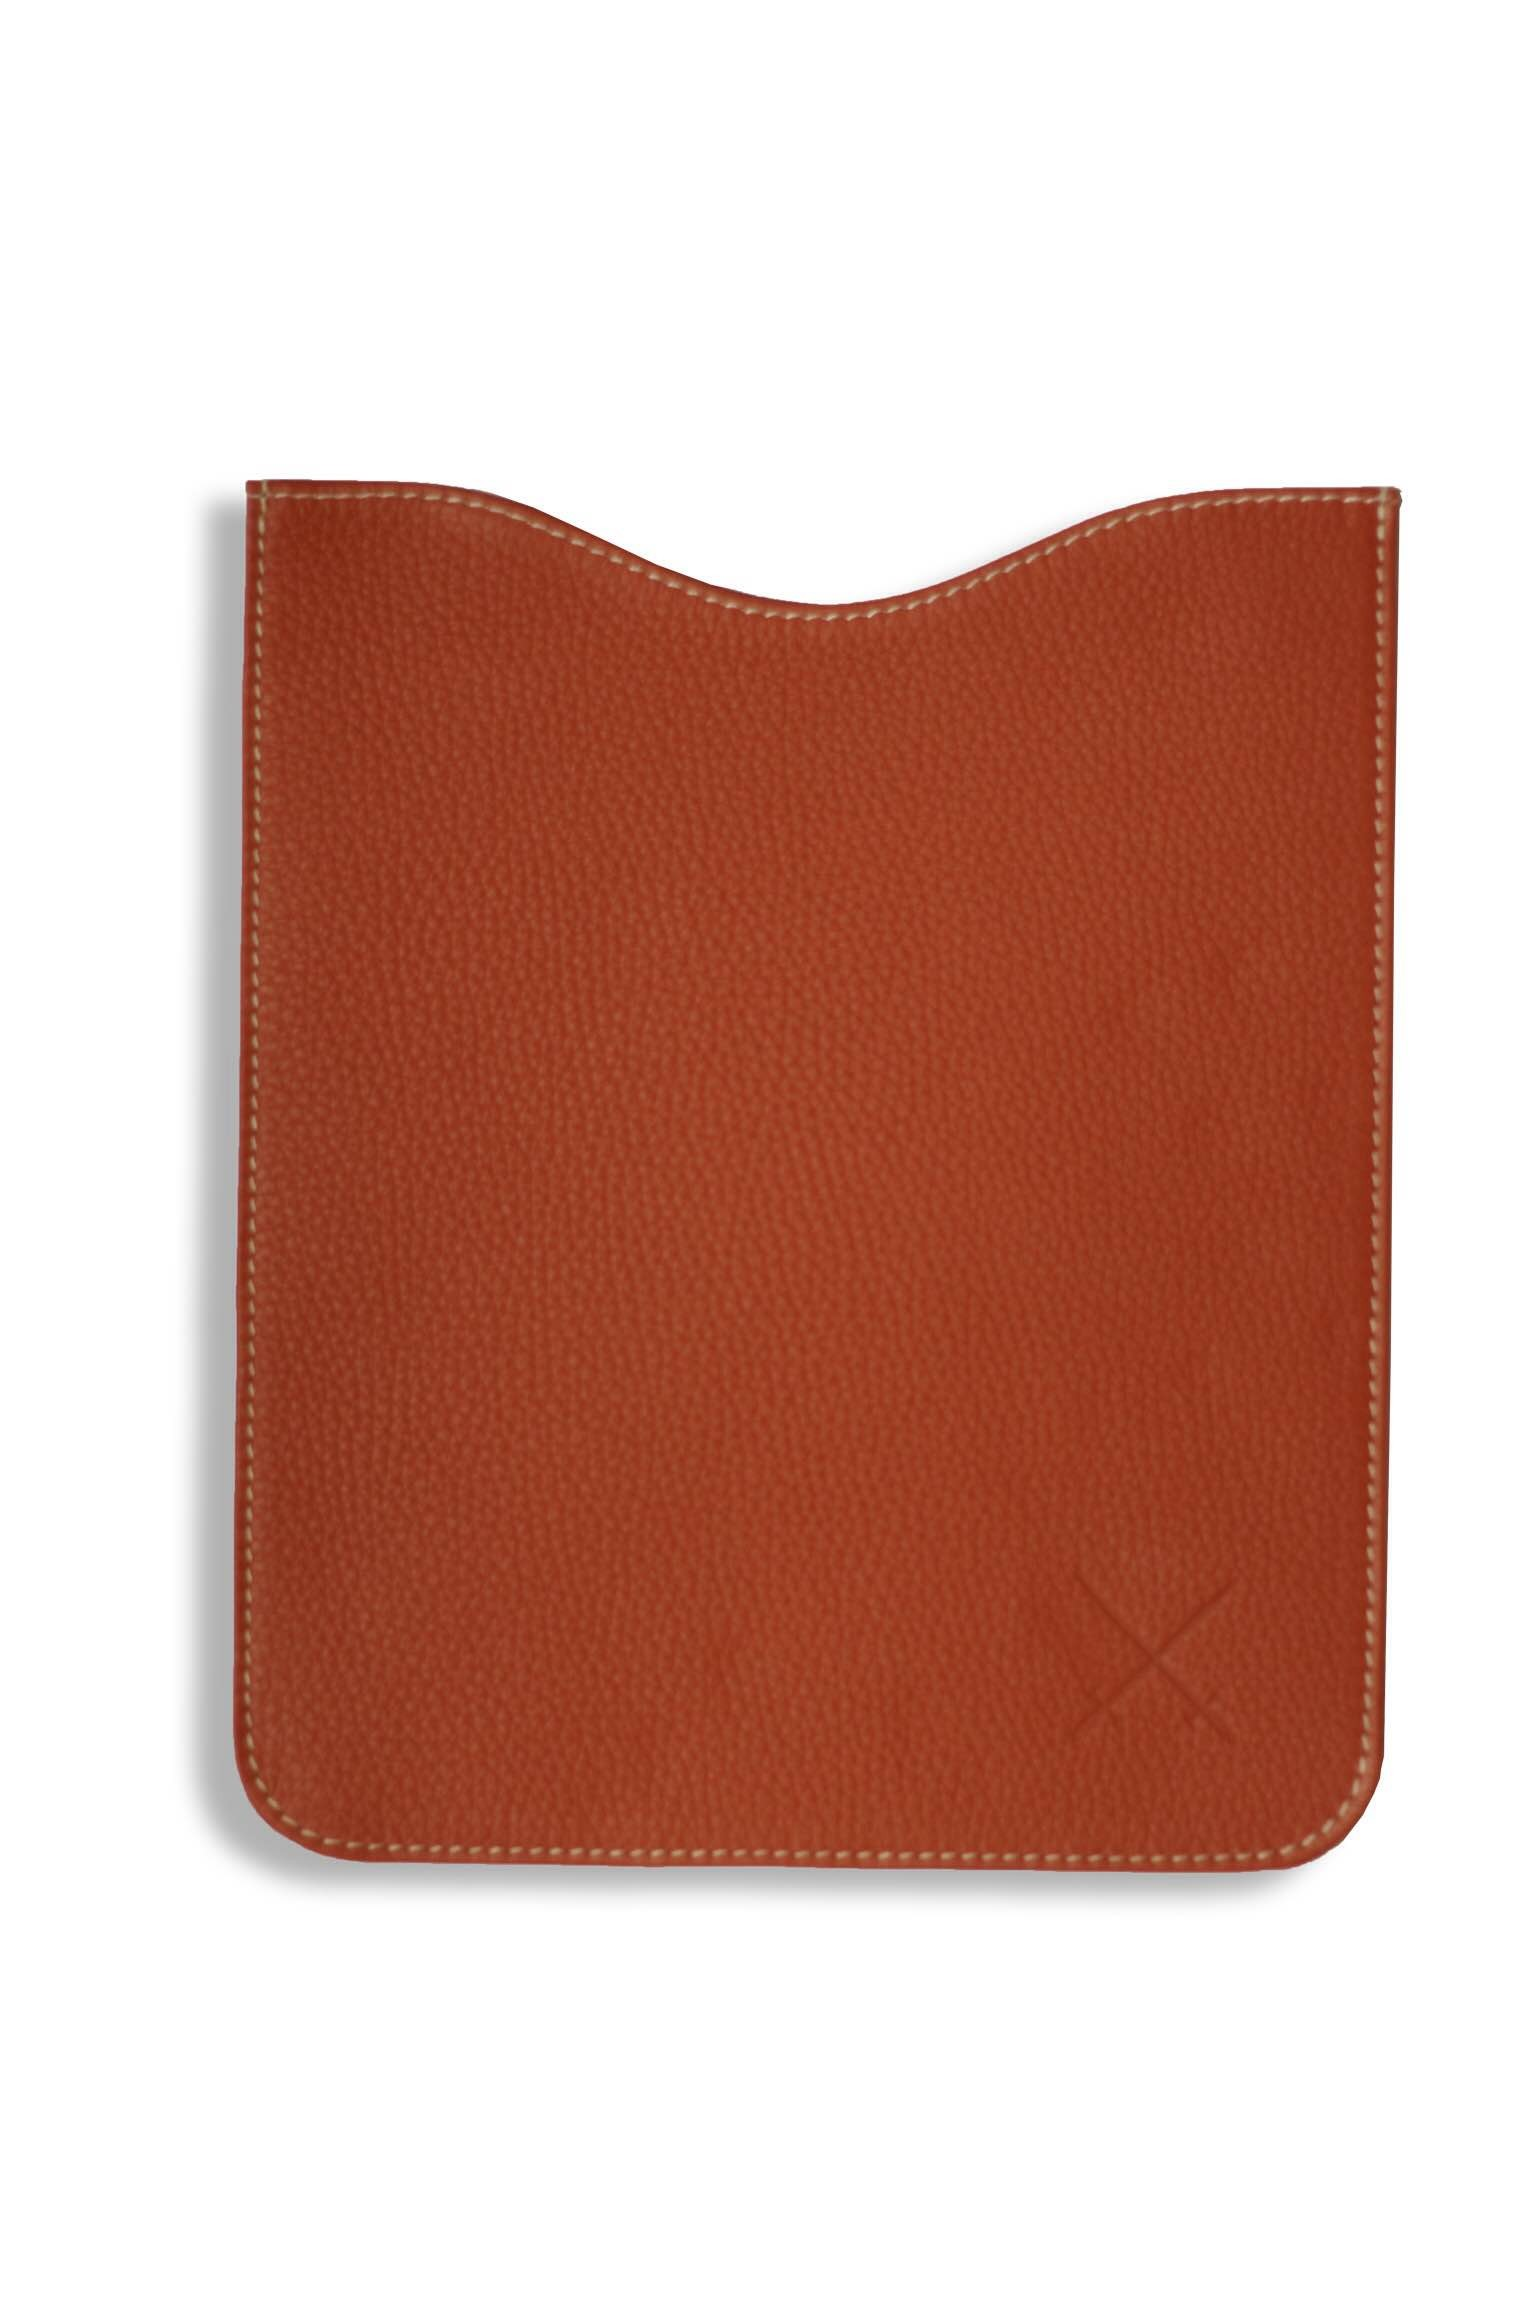 Housse Ipad Eliot Orange tuile